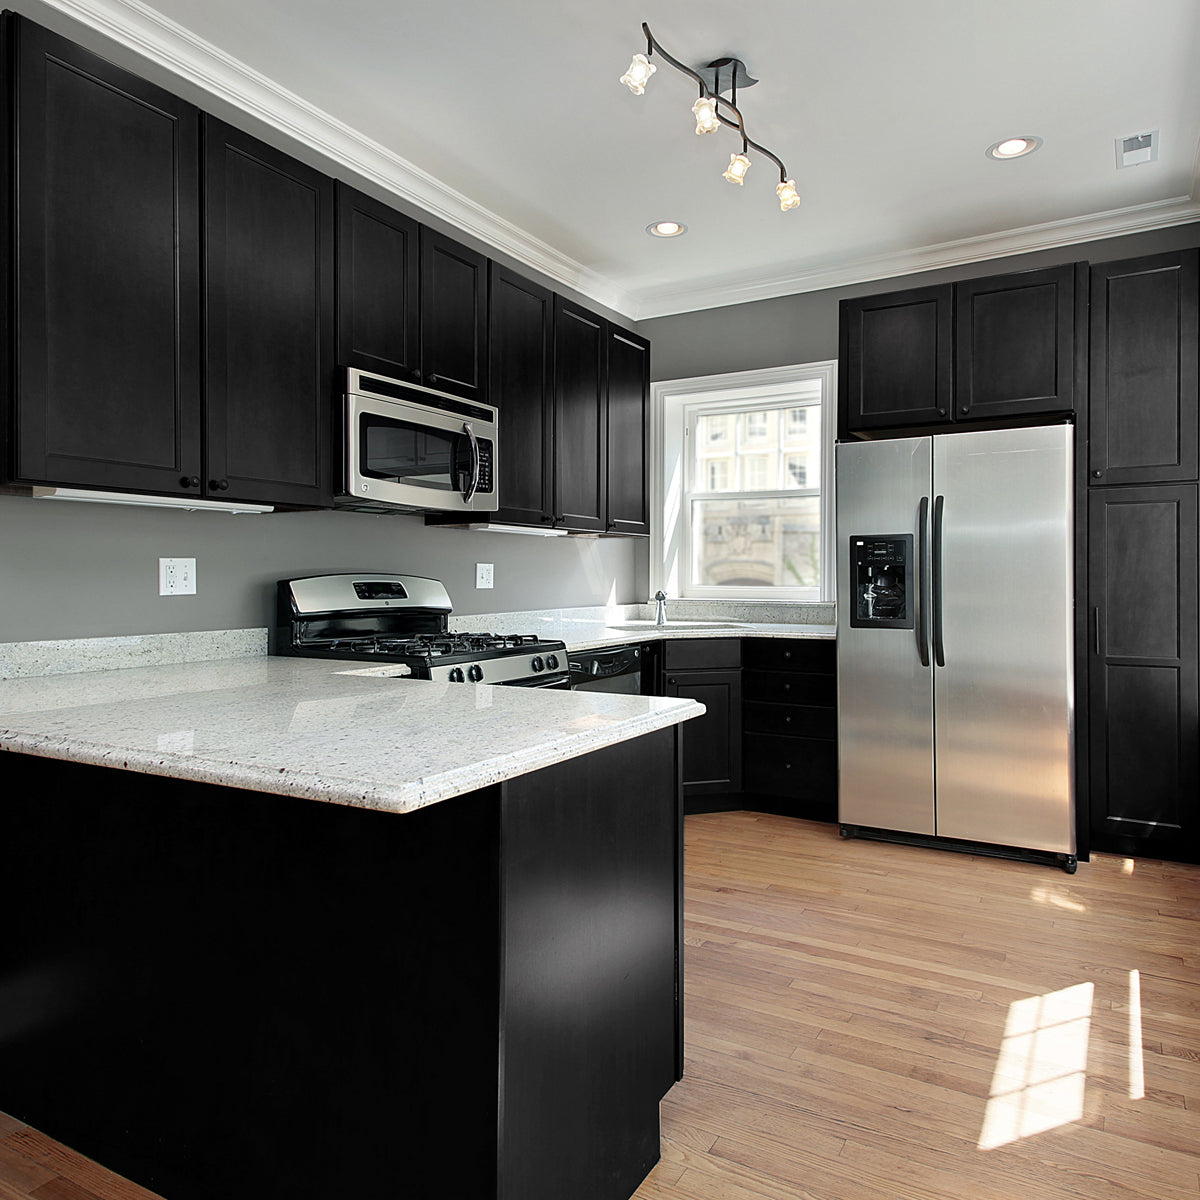 Kitchen Cabinets Painted Black: Nuvo Black Deco Cabinet Paint